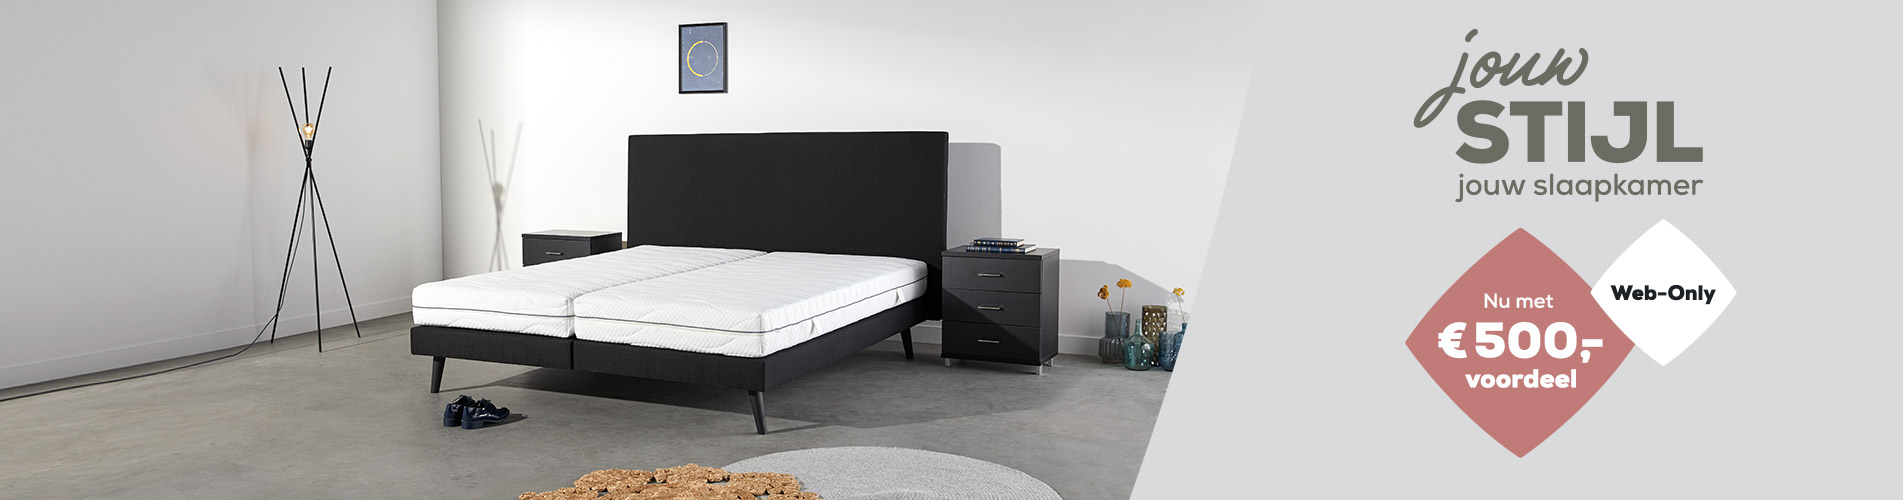 Boxspringcollectie Web-Only | Swiss Sense